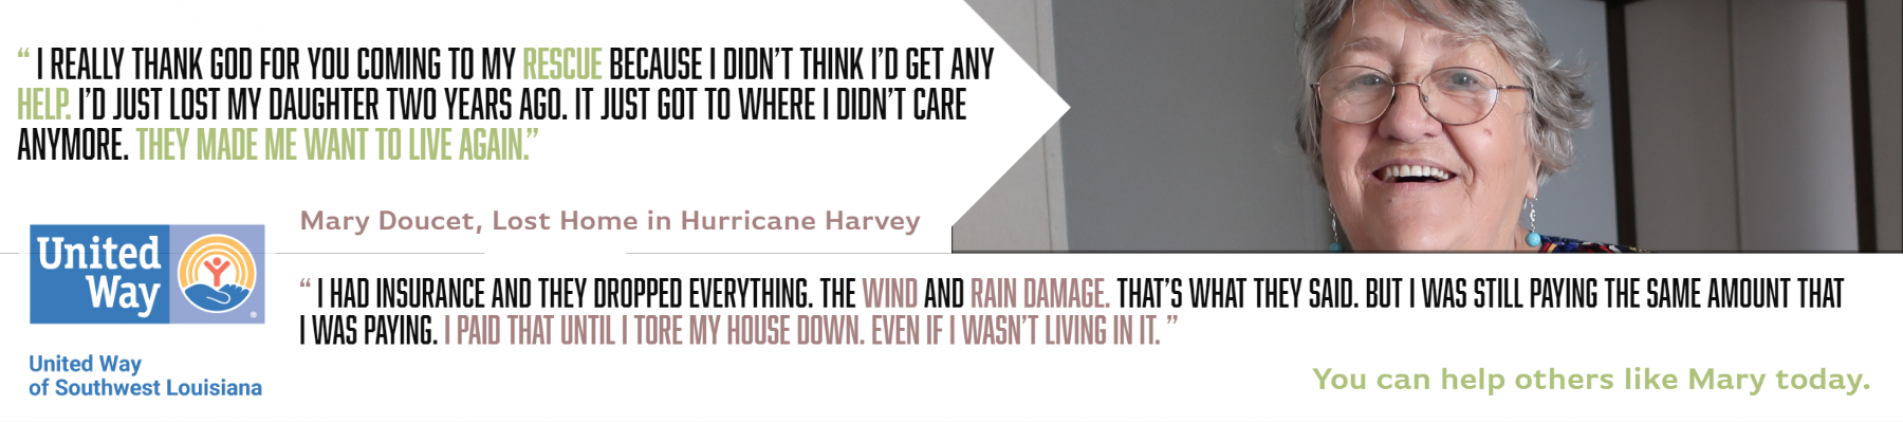 Mary Doucet had homeowners insurance during Hurricane Harvey, but it didn't cover the total loss of her home. Your gift has given her a place to call home!